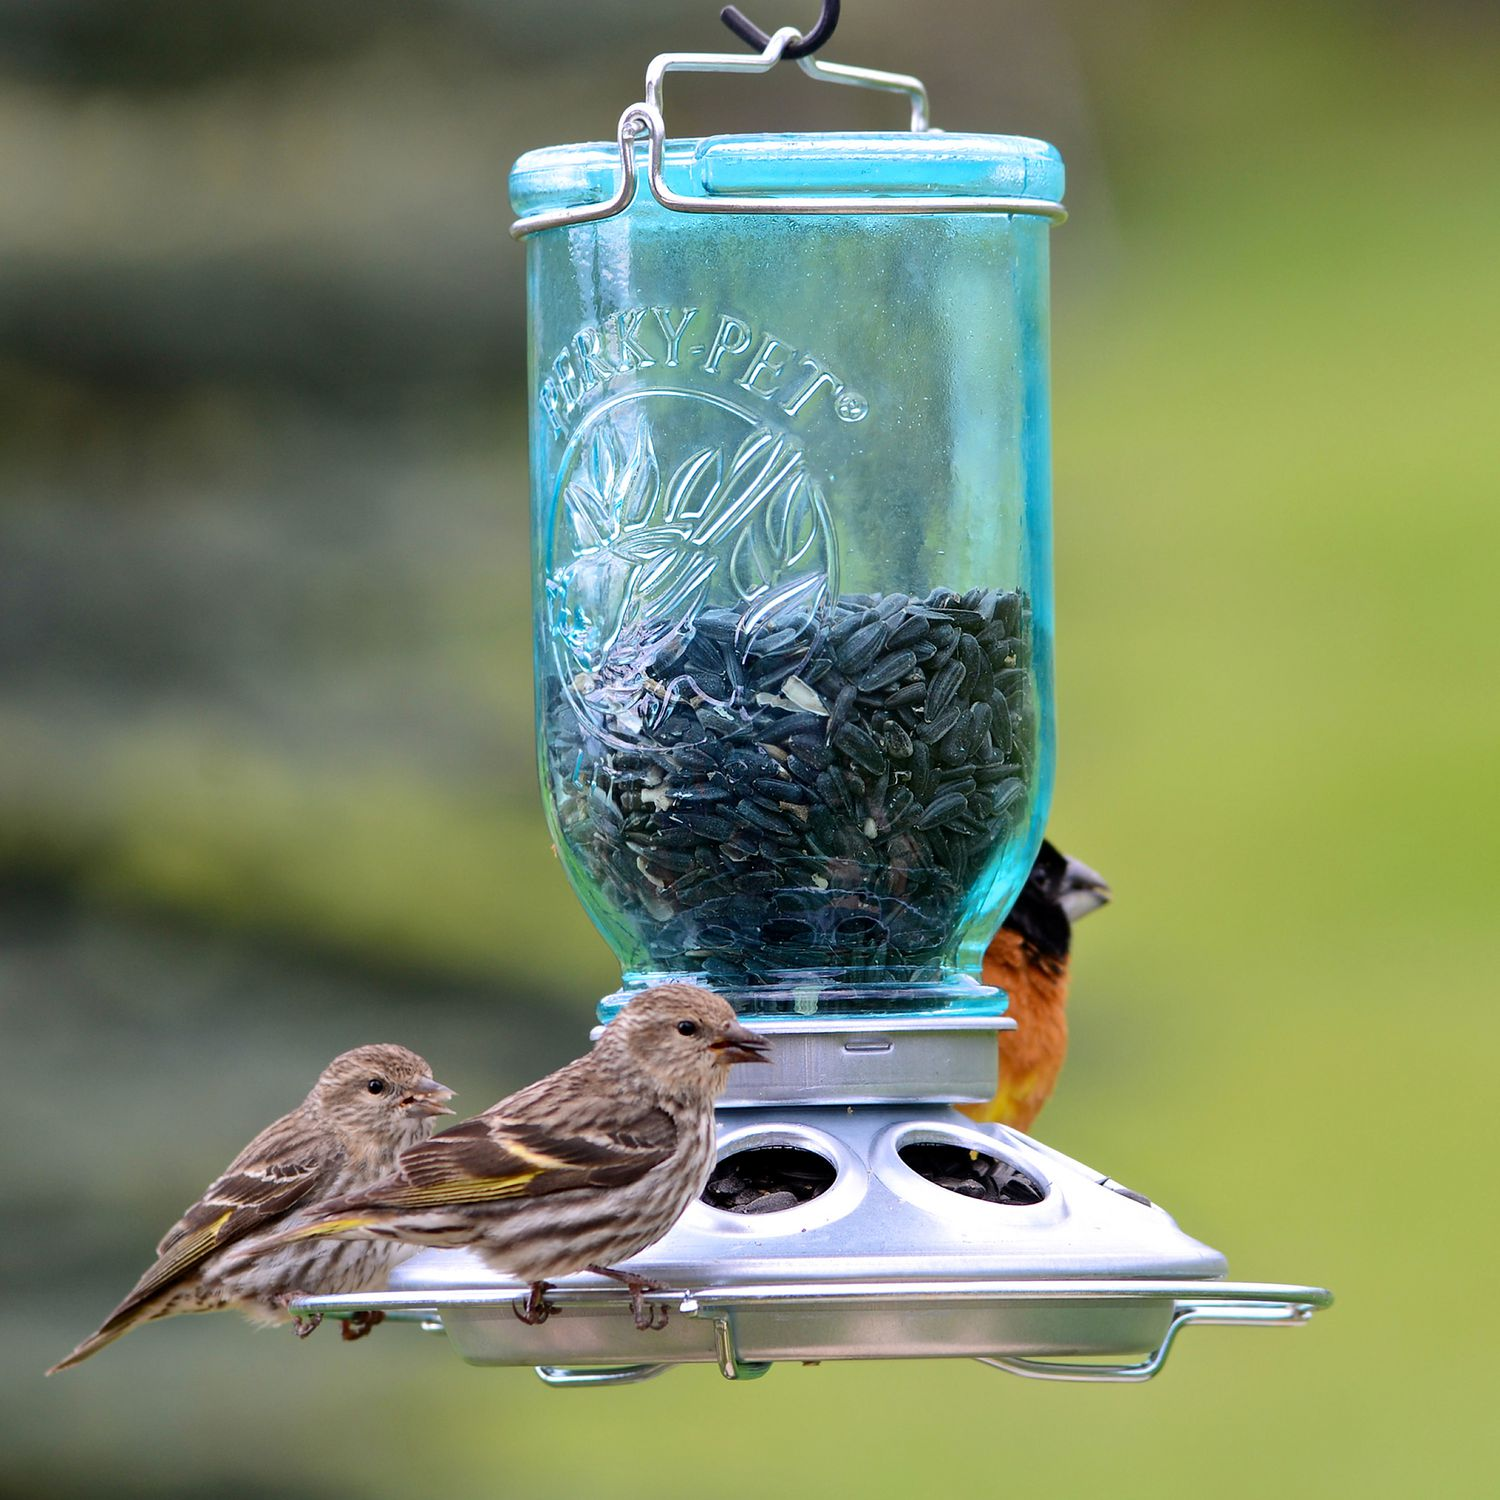 small fauna photo photography sun bird animal feeding garden images feed food nature close aviary wildlife feeder eat blue world free jungle tit watch beautiful feeders en